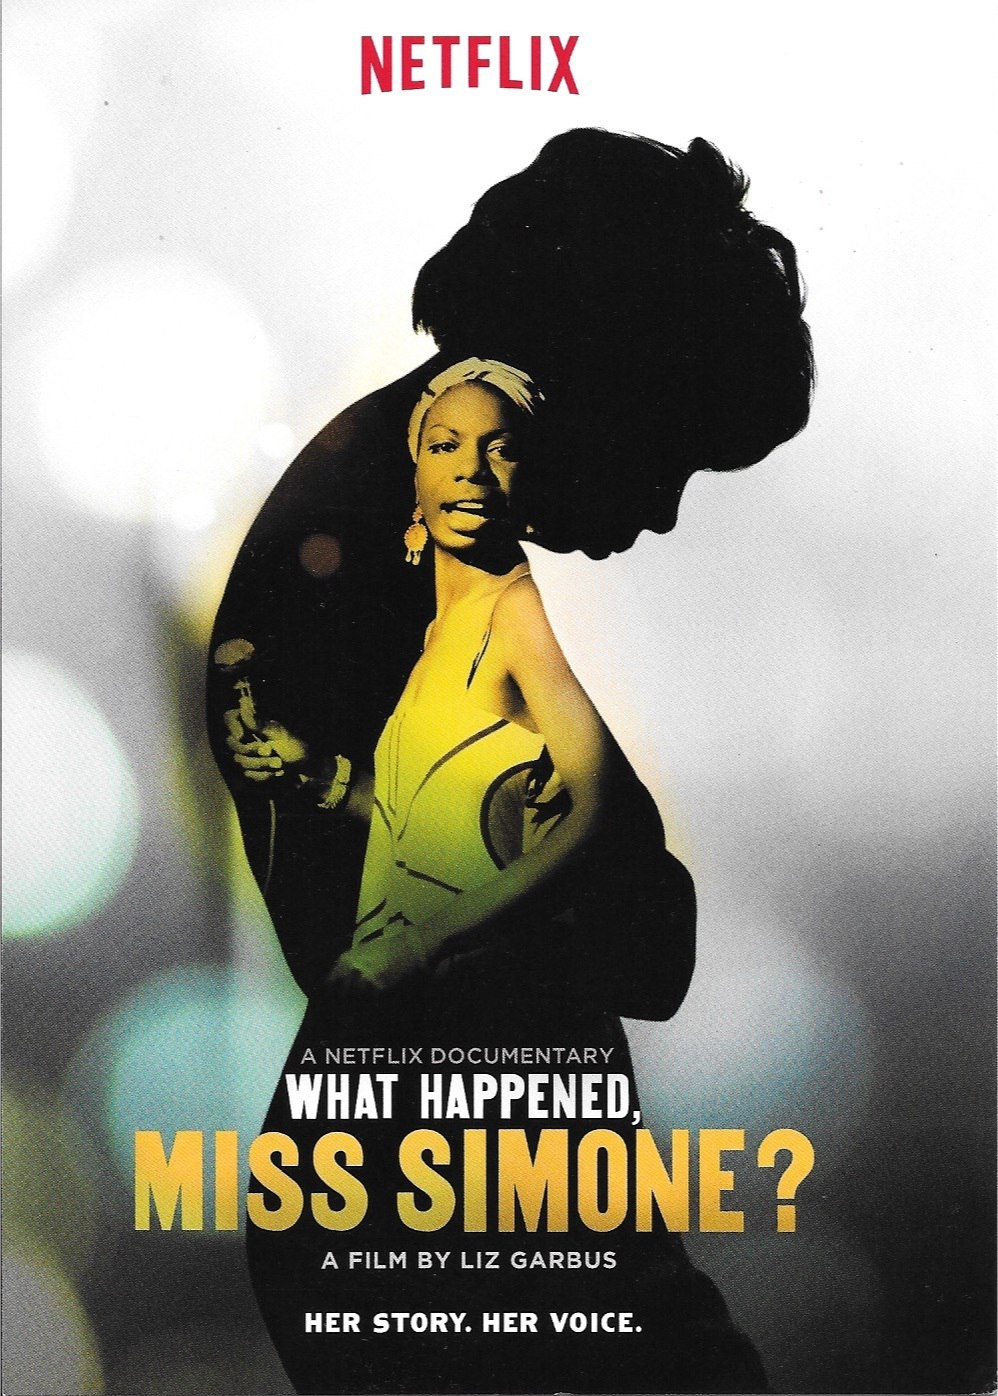 What Happened, Miss Simone? was released on Netflix June 26.